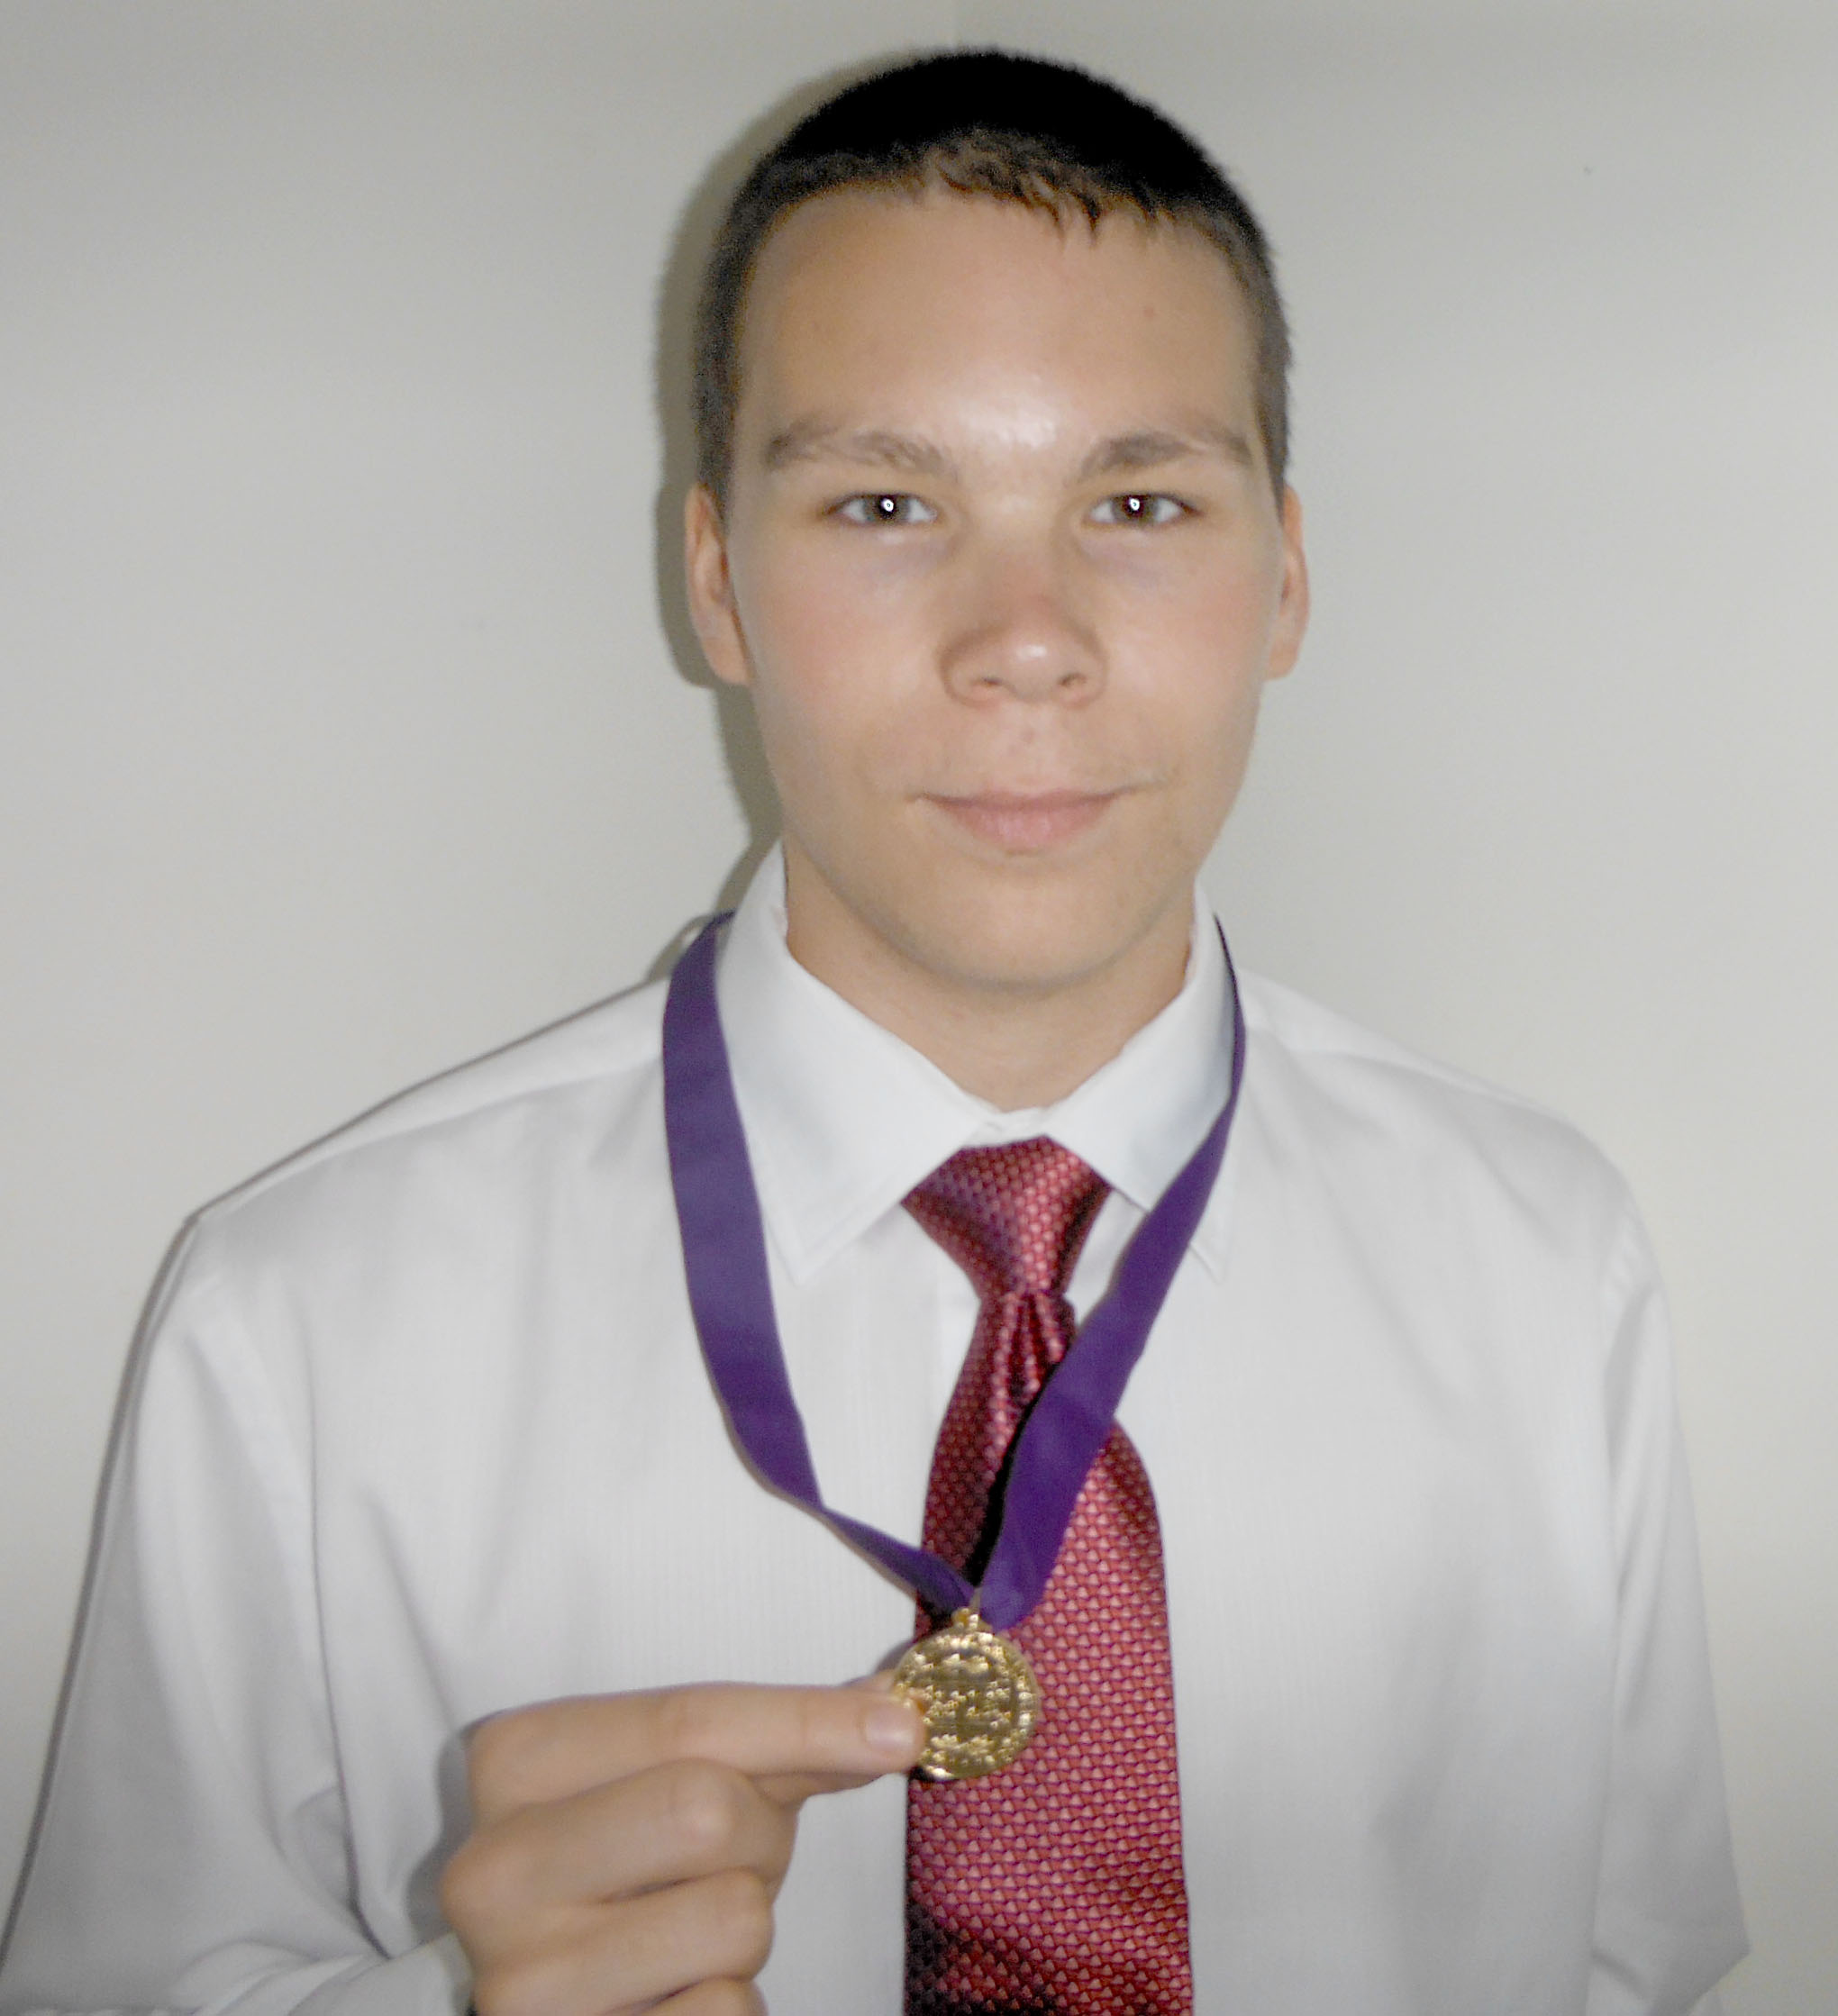 Michael Wins Gold Medal for 2014 National Latin Exam